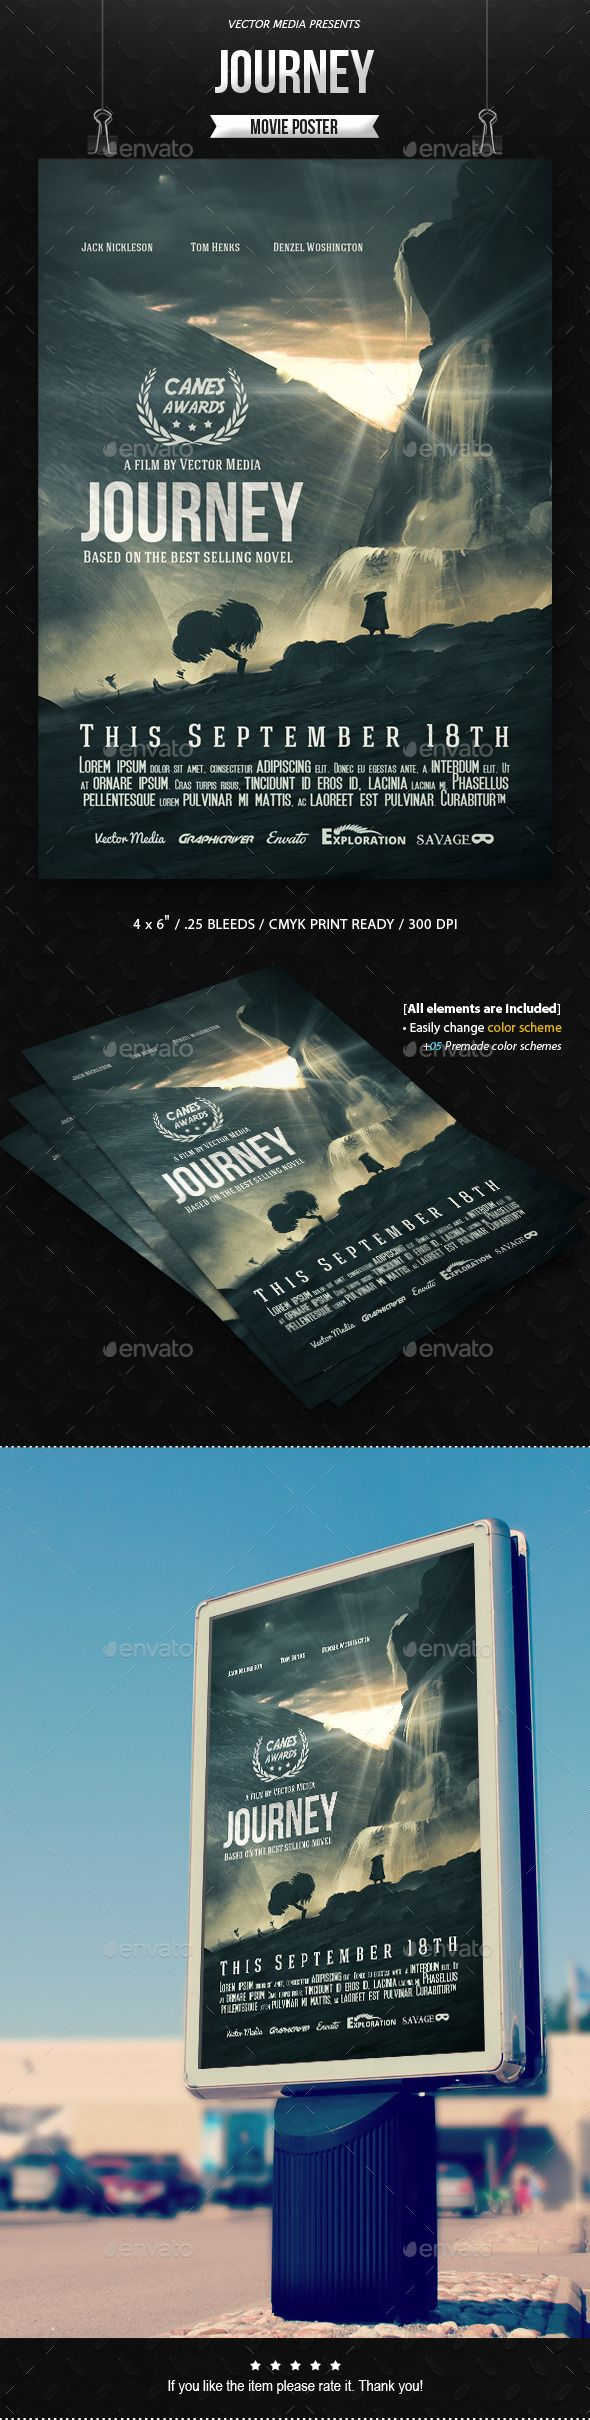 12 best Flyers/Posters: Movie Style images on Pinterest | Flyer ...